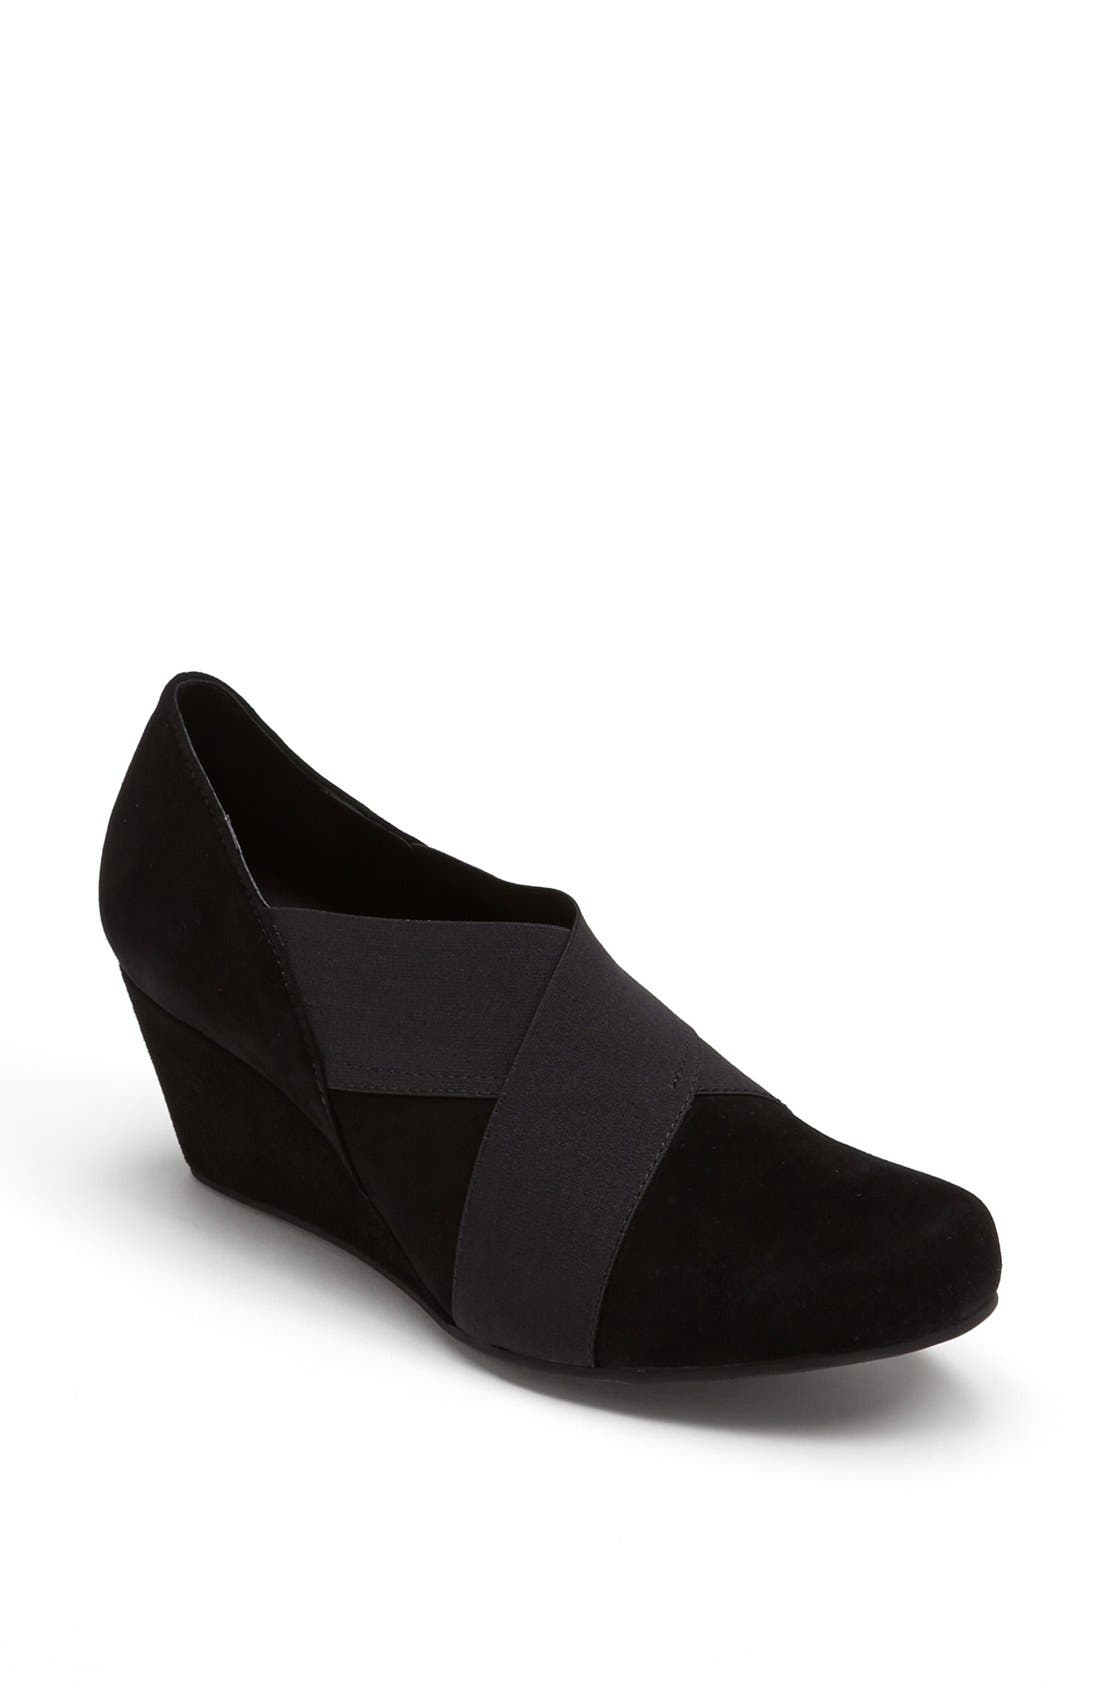 Alternate Image 1 Selected - Cordani 'Brattle' Wedge Pump